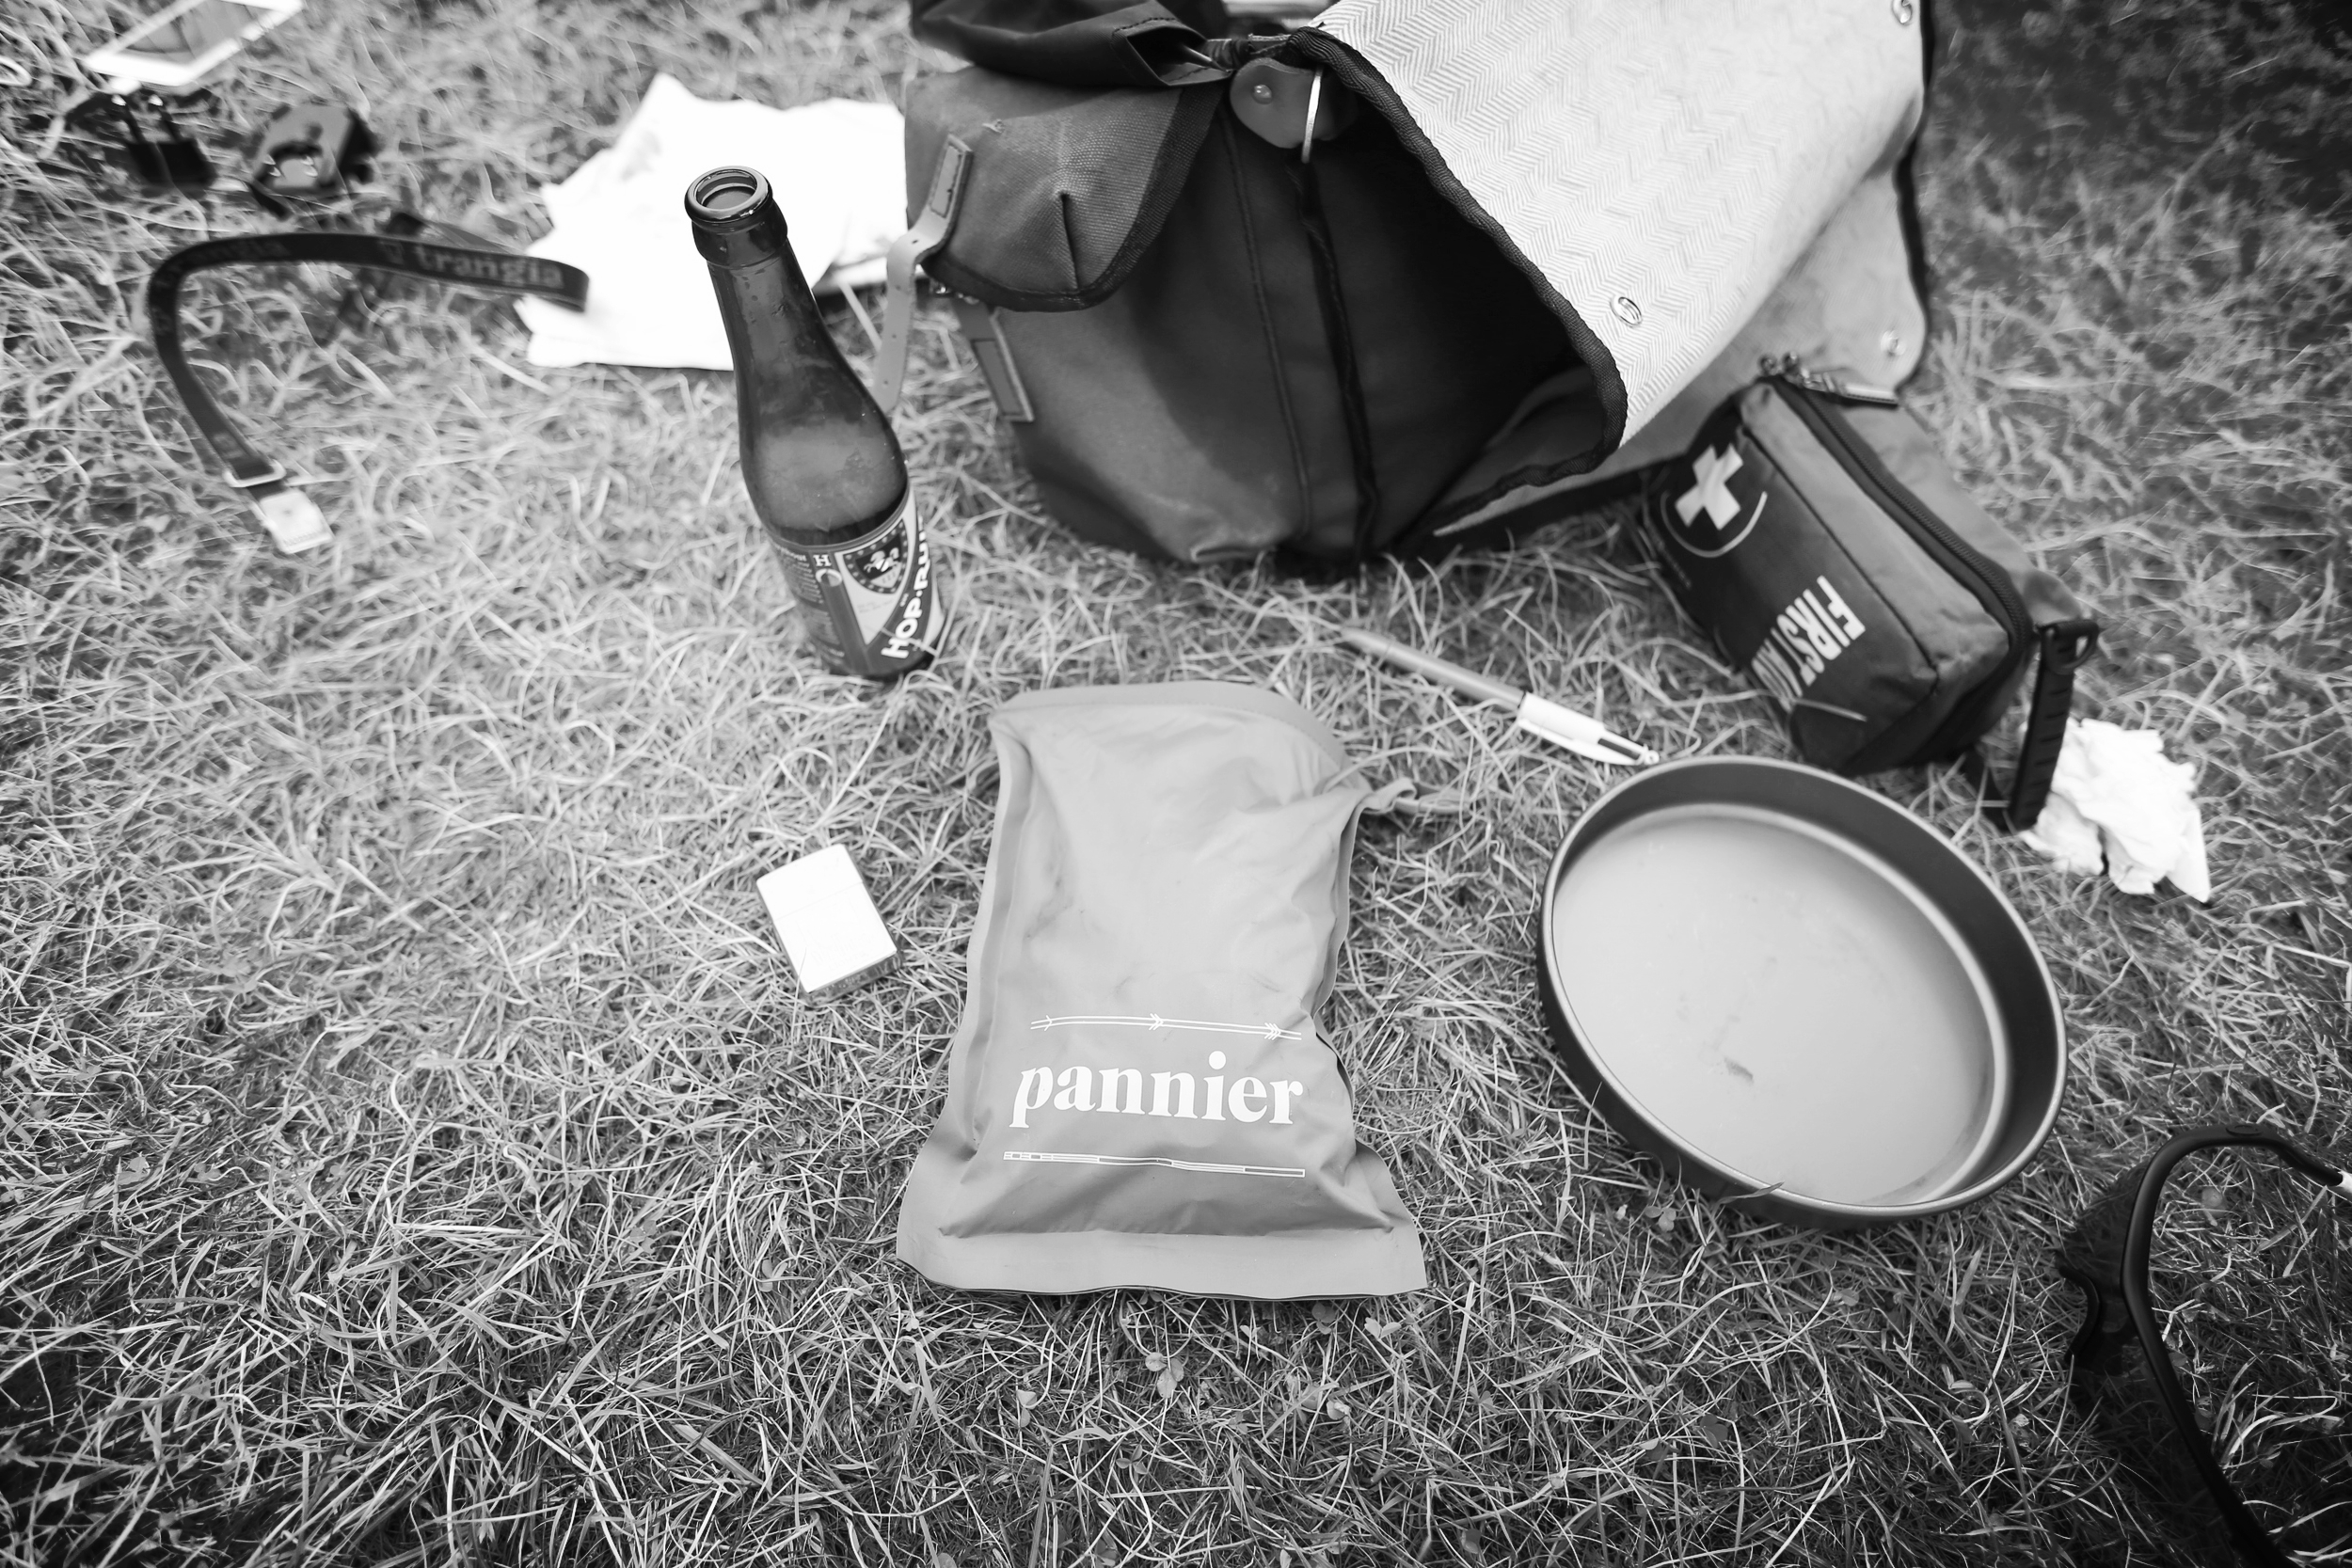 Pannier cc   sorted me out with a few of their top notch dry bags.